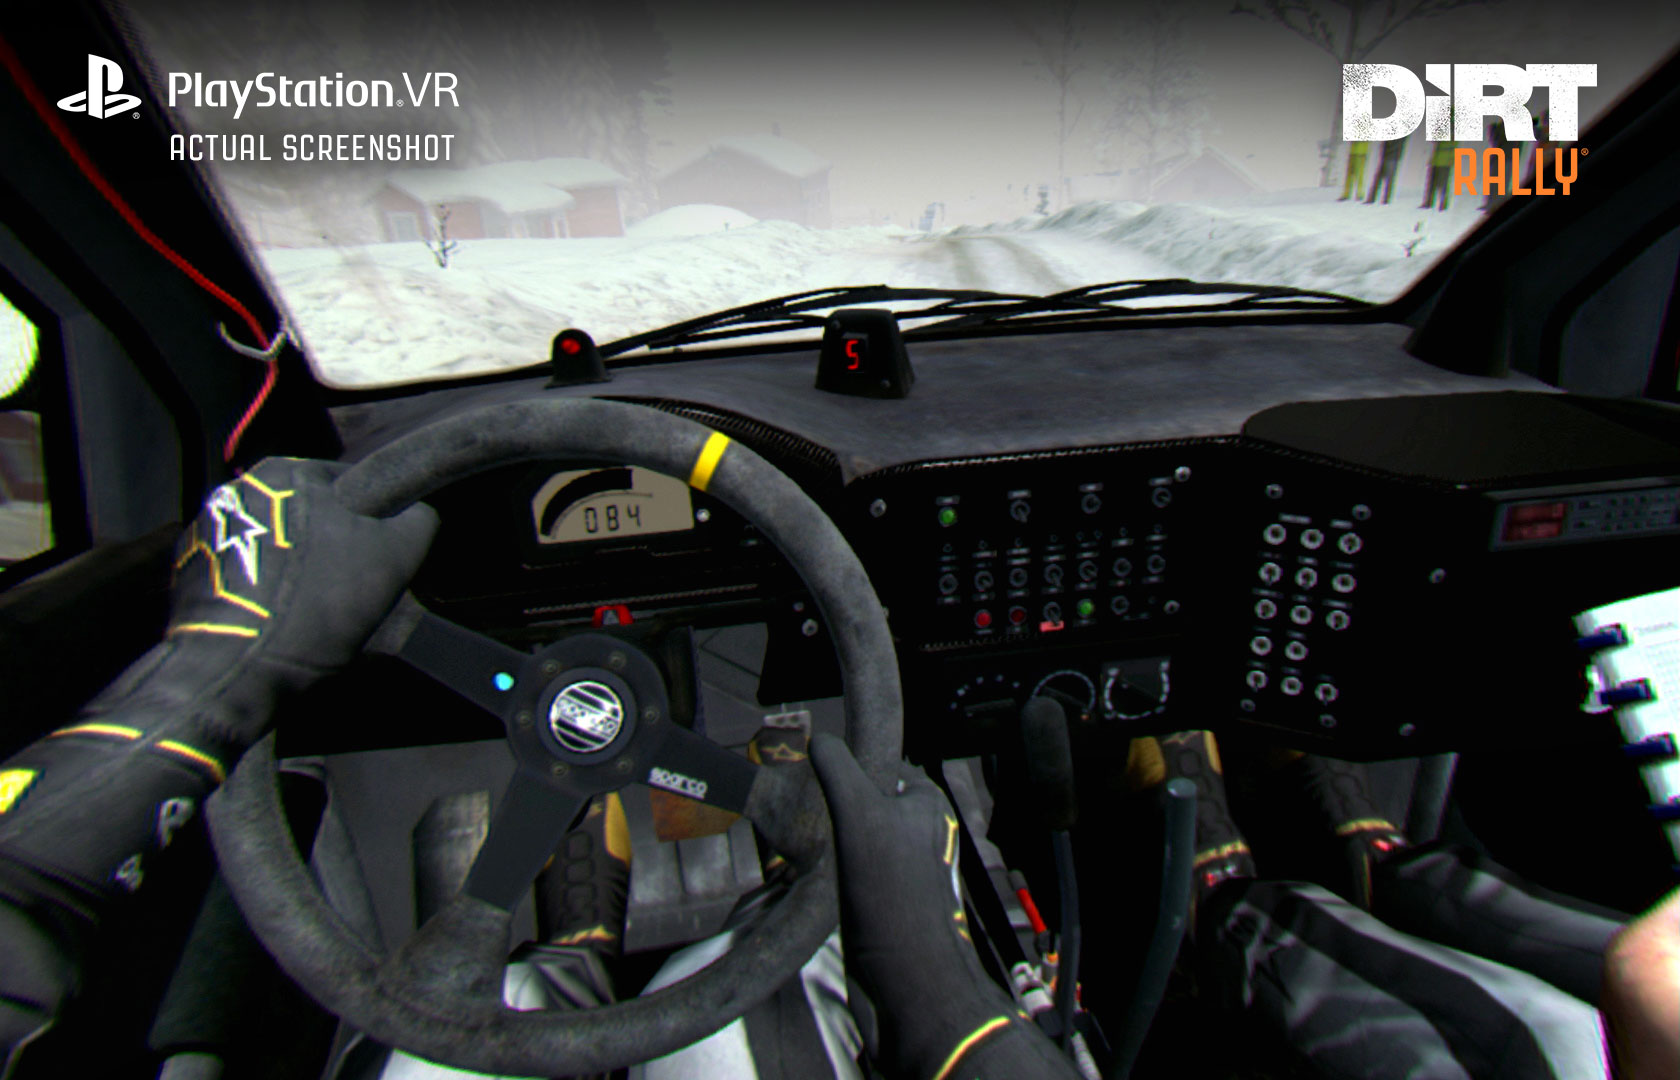 DiRT Rally PSVR screenshot